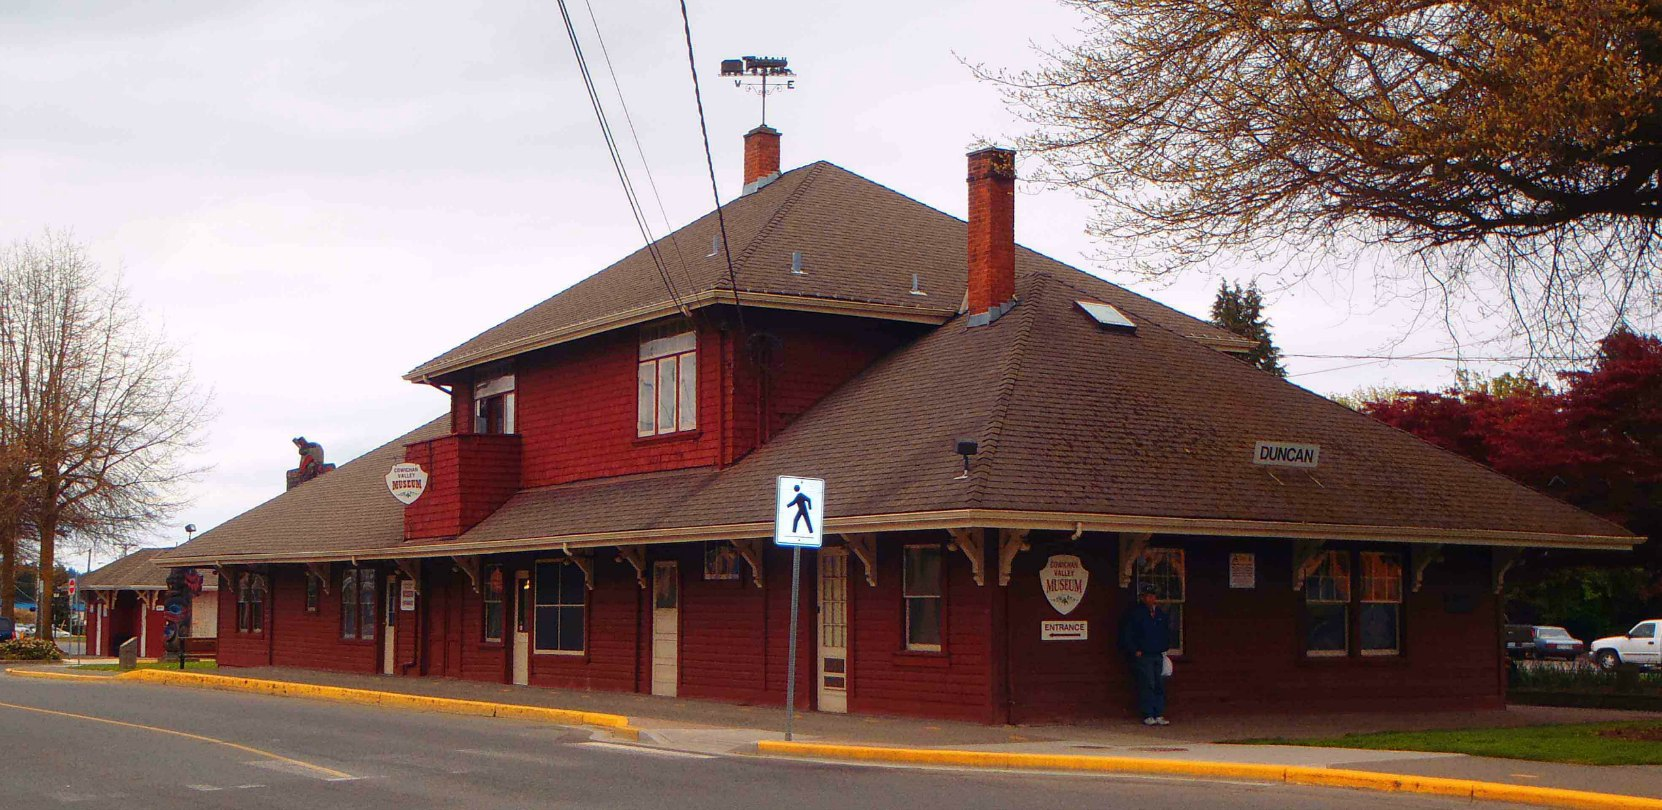 The former Esquimalt & Nanaimo (E&N) Railway Station, now the Cowichan Valley Museum, Canada Avenue, Duncan, B.C.